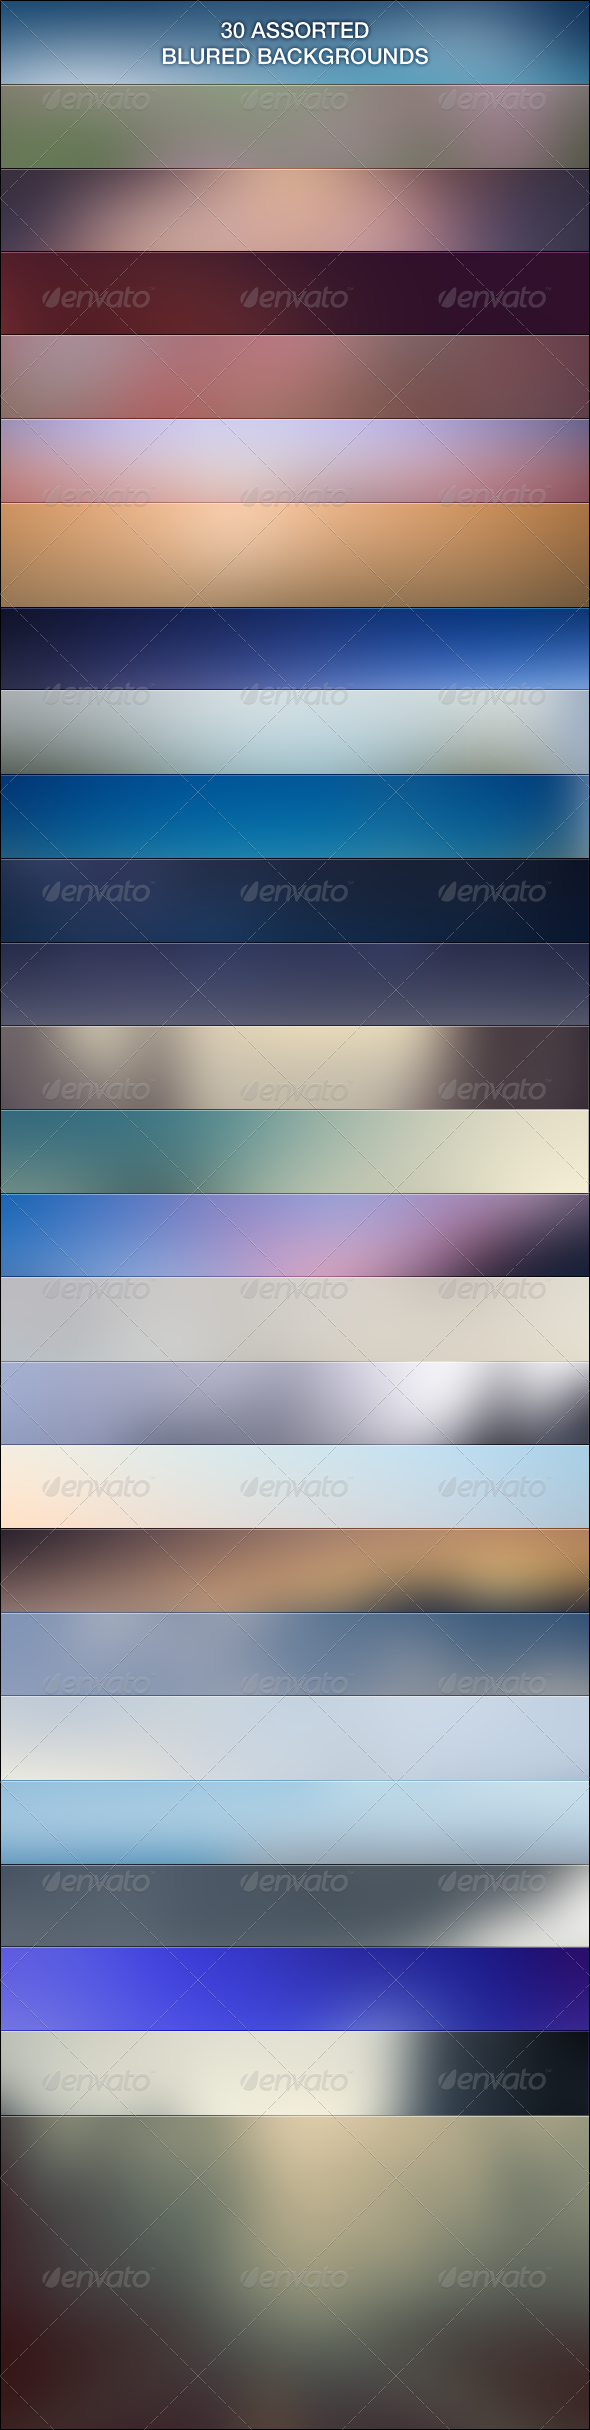 30 backgrounds blur